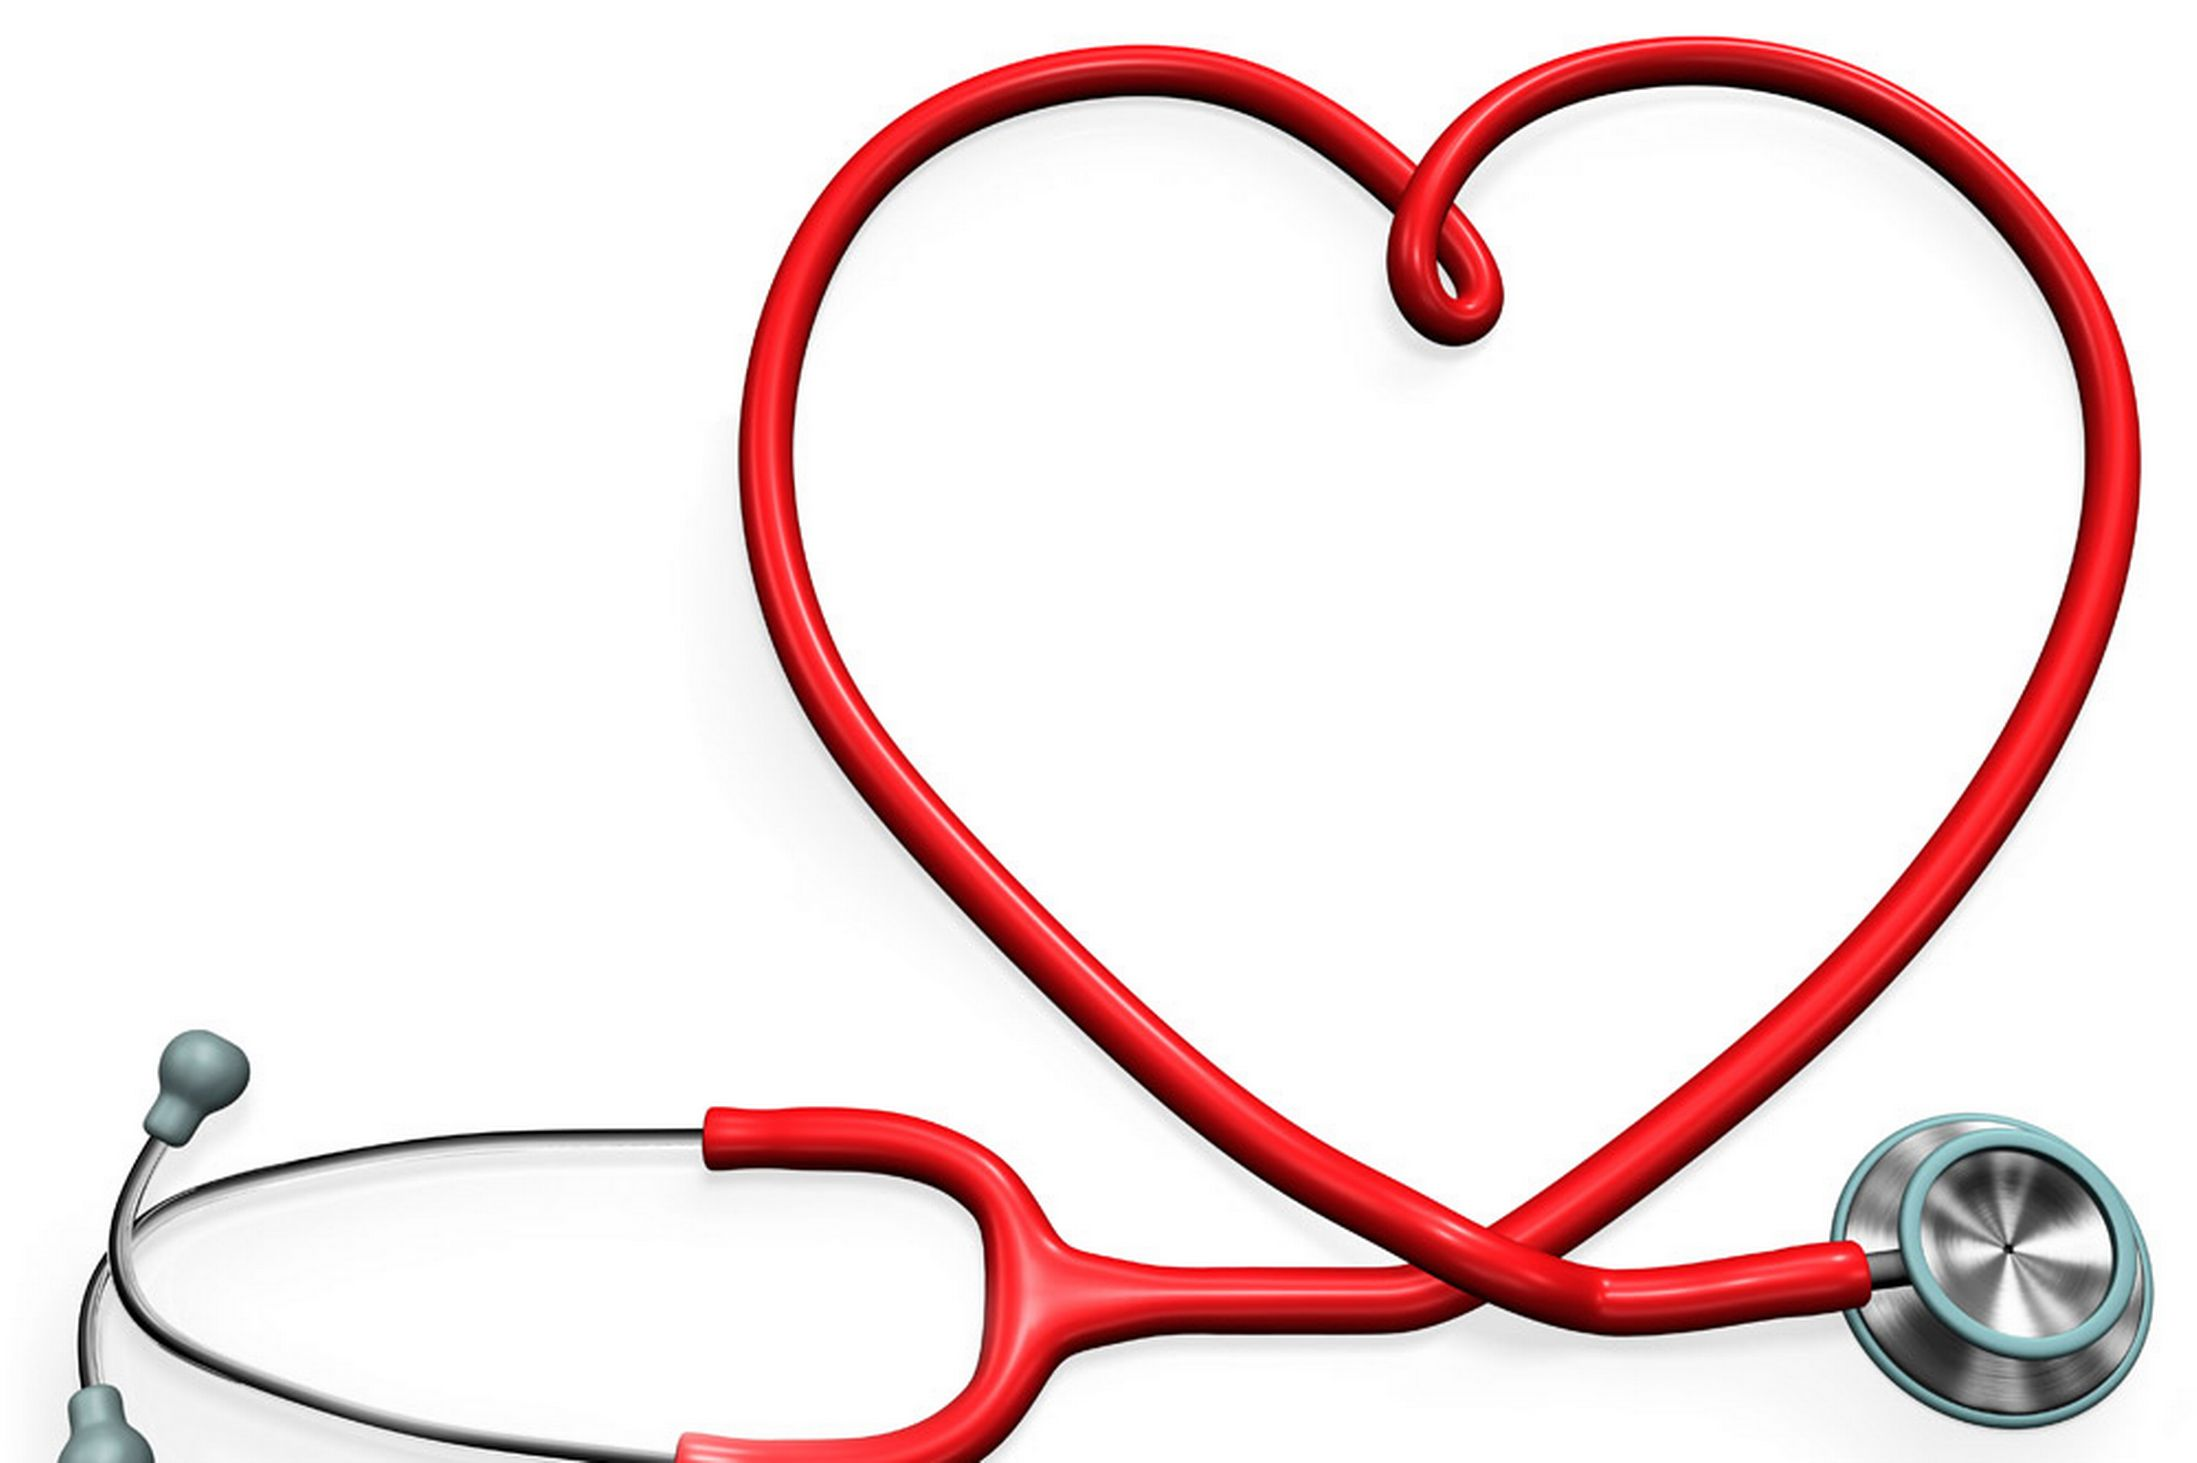 Heart-shaped clipart stethascope Clipartion Clipart Stethoscope Best Clipart